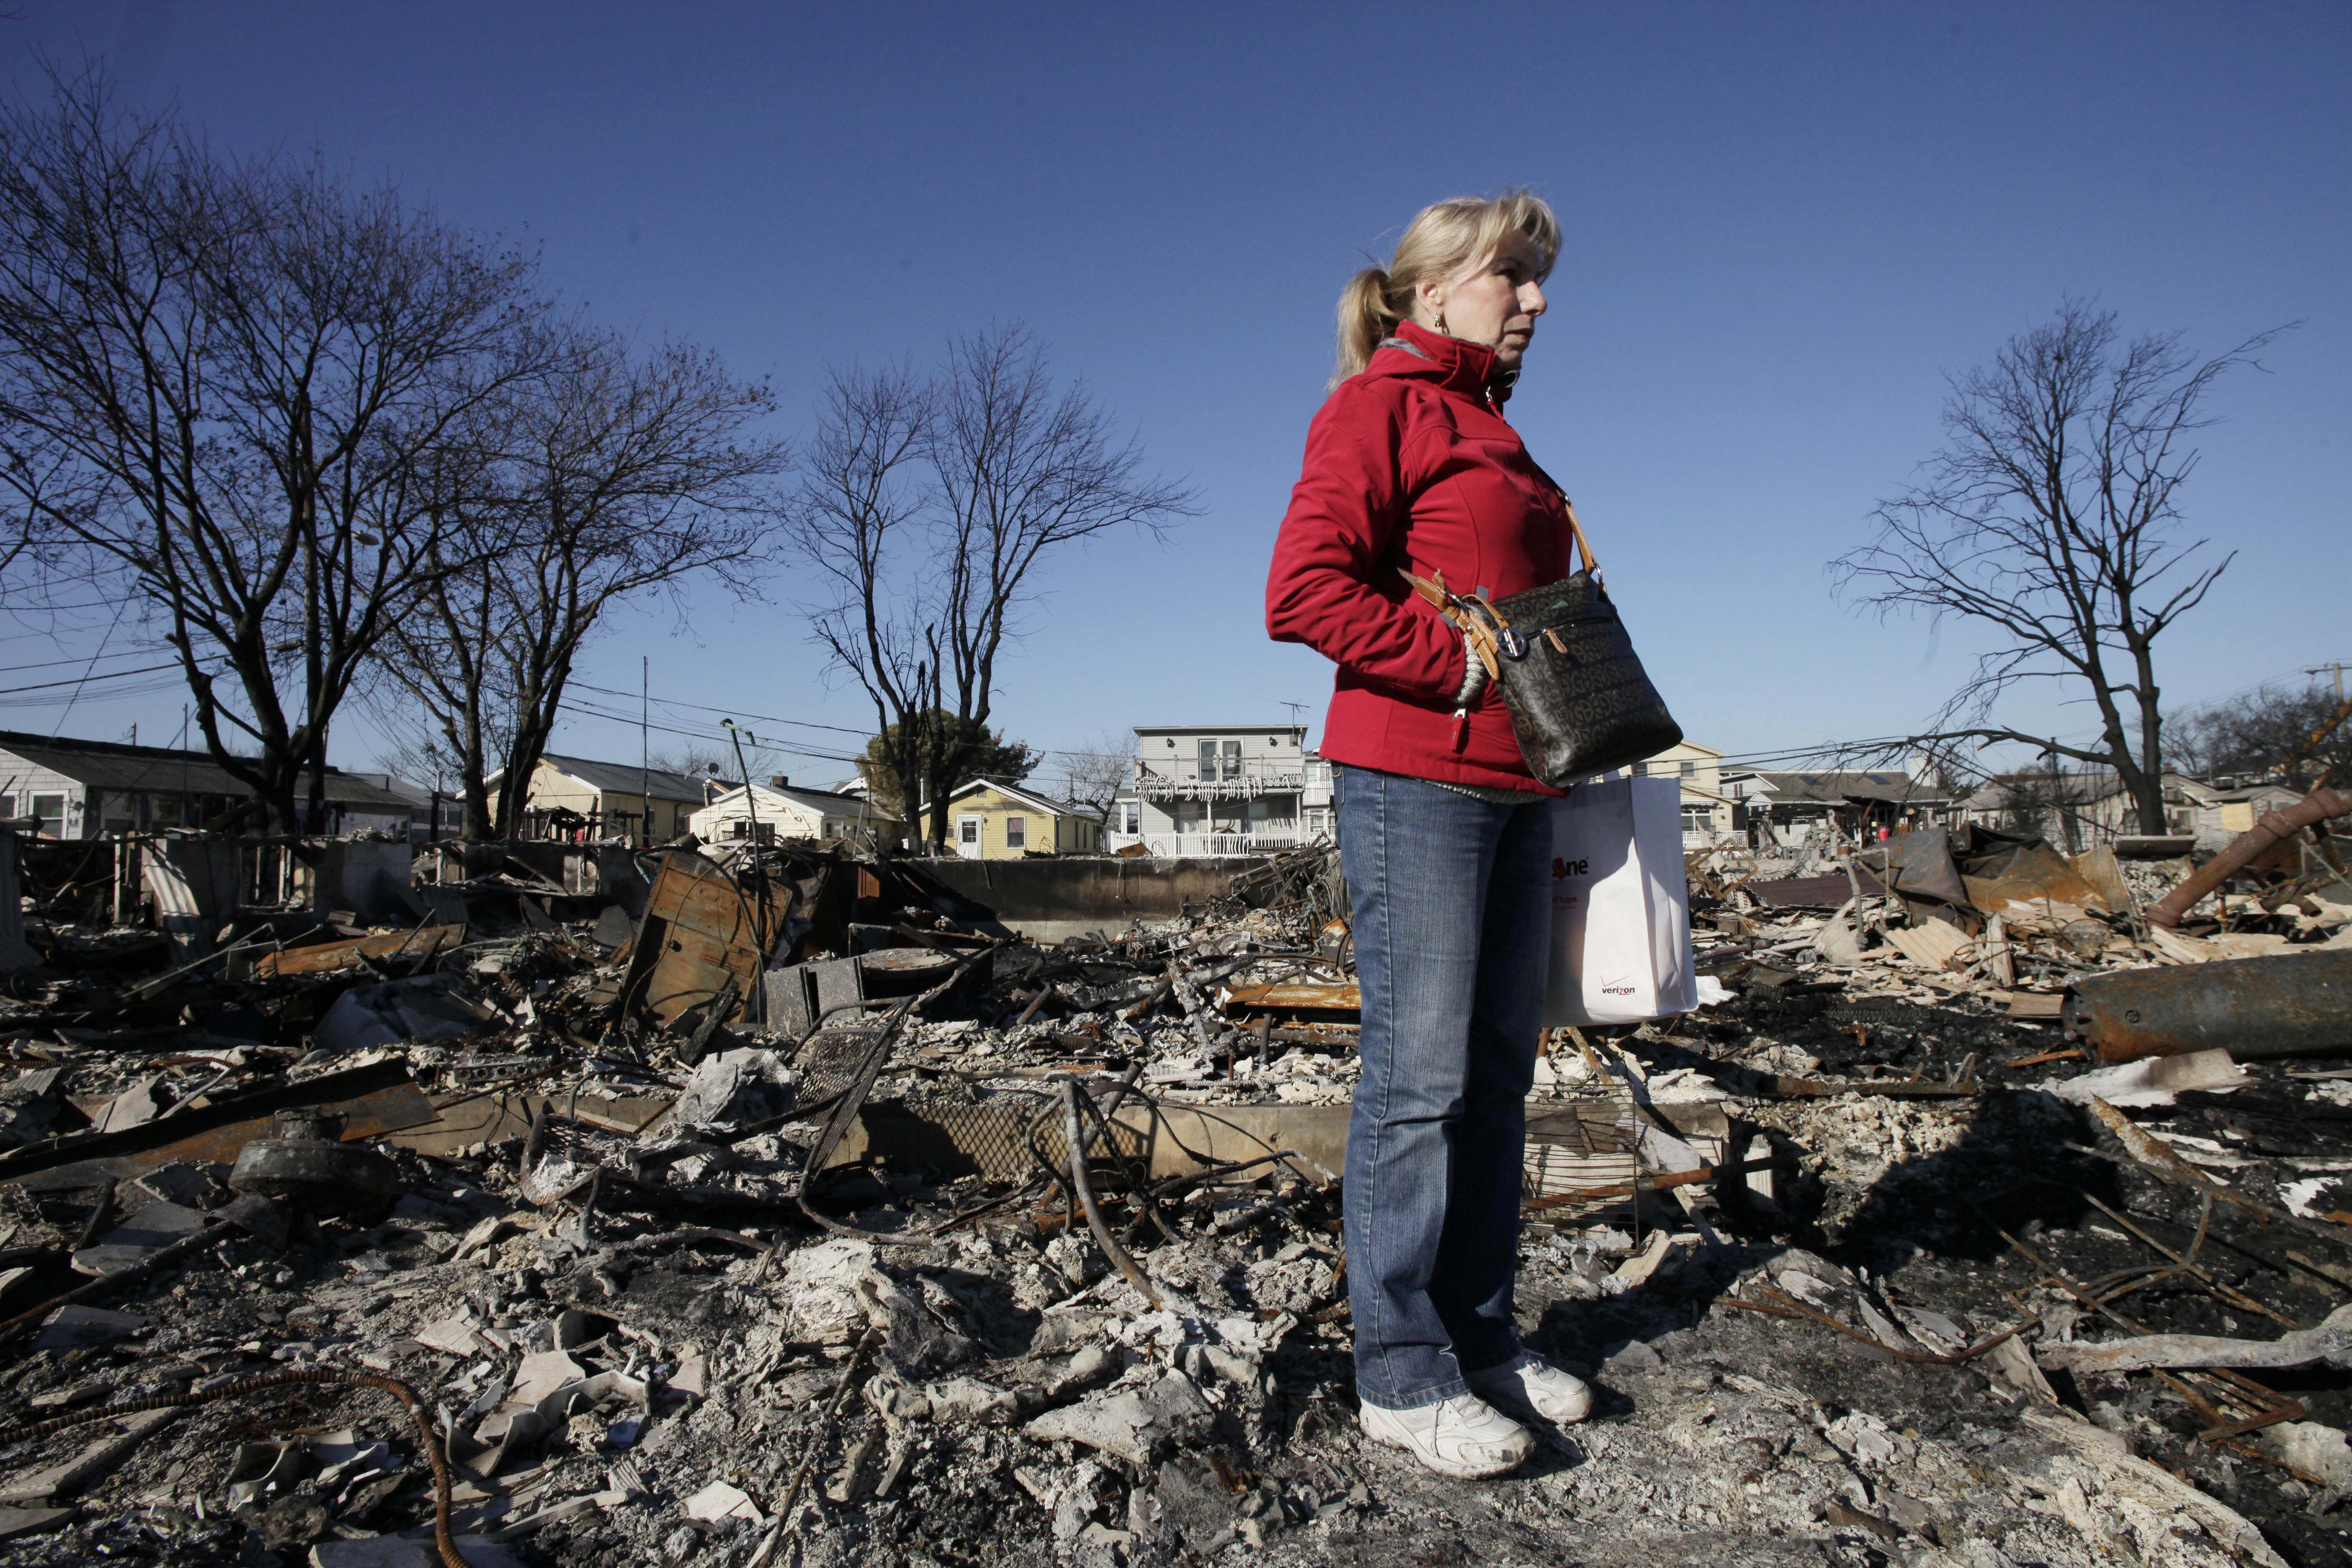 Cathy O'Hanlon poses in front of the charred remains of her home in the Breezy Point section of the Queens borough of New York, Wednesday, Nov. 14, 2012. A fire destroyed more than 50 homes in the oceanfront community during Superstorm Sandy. O'Hanlon and her husband plan to rebuild the house. (AP Photo/Mark Lennihan)